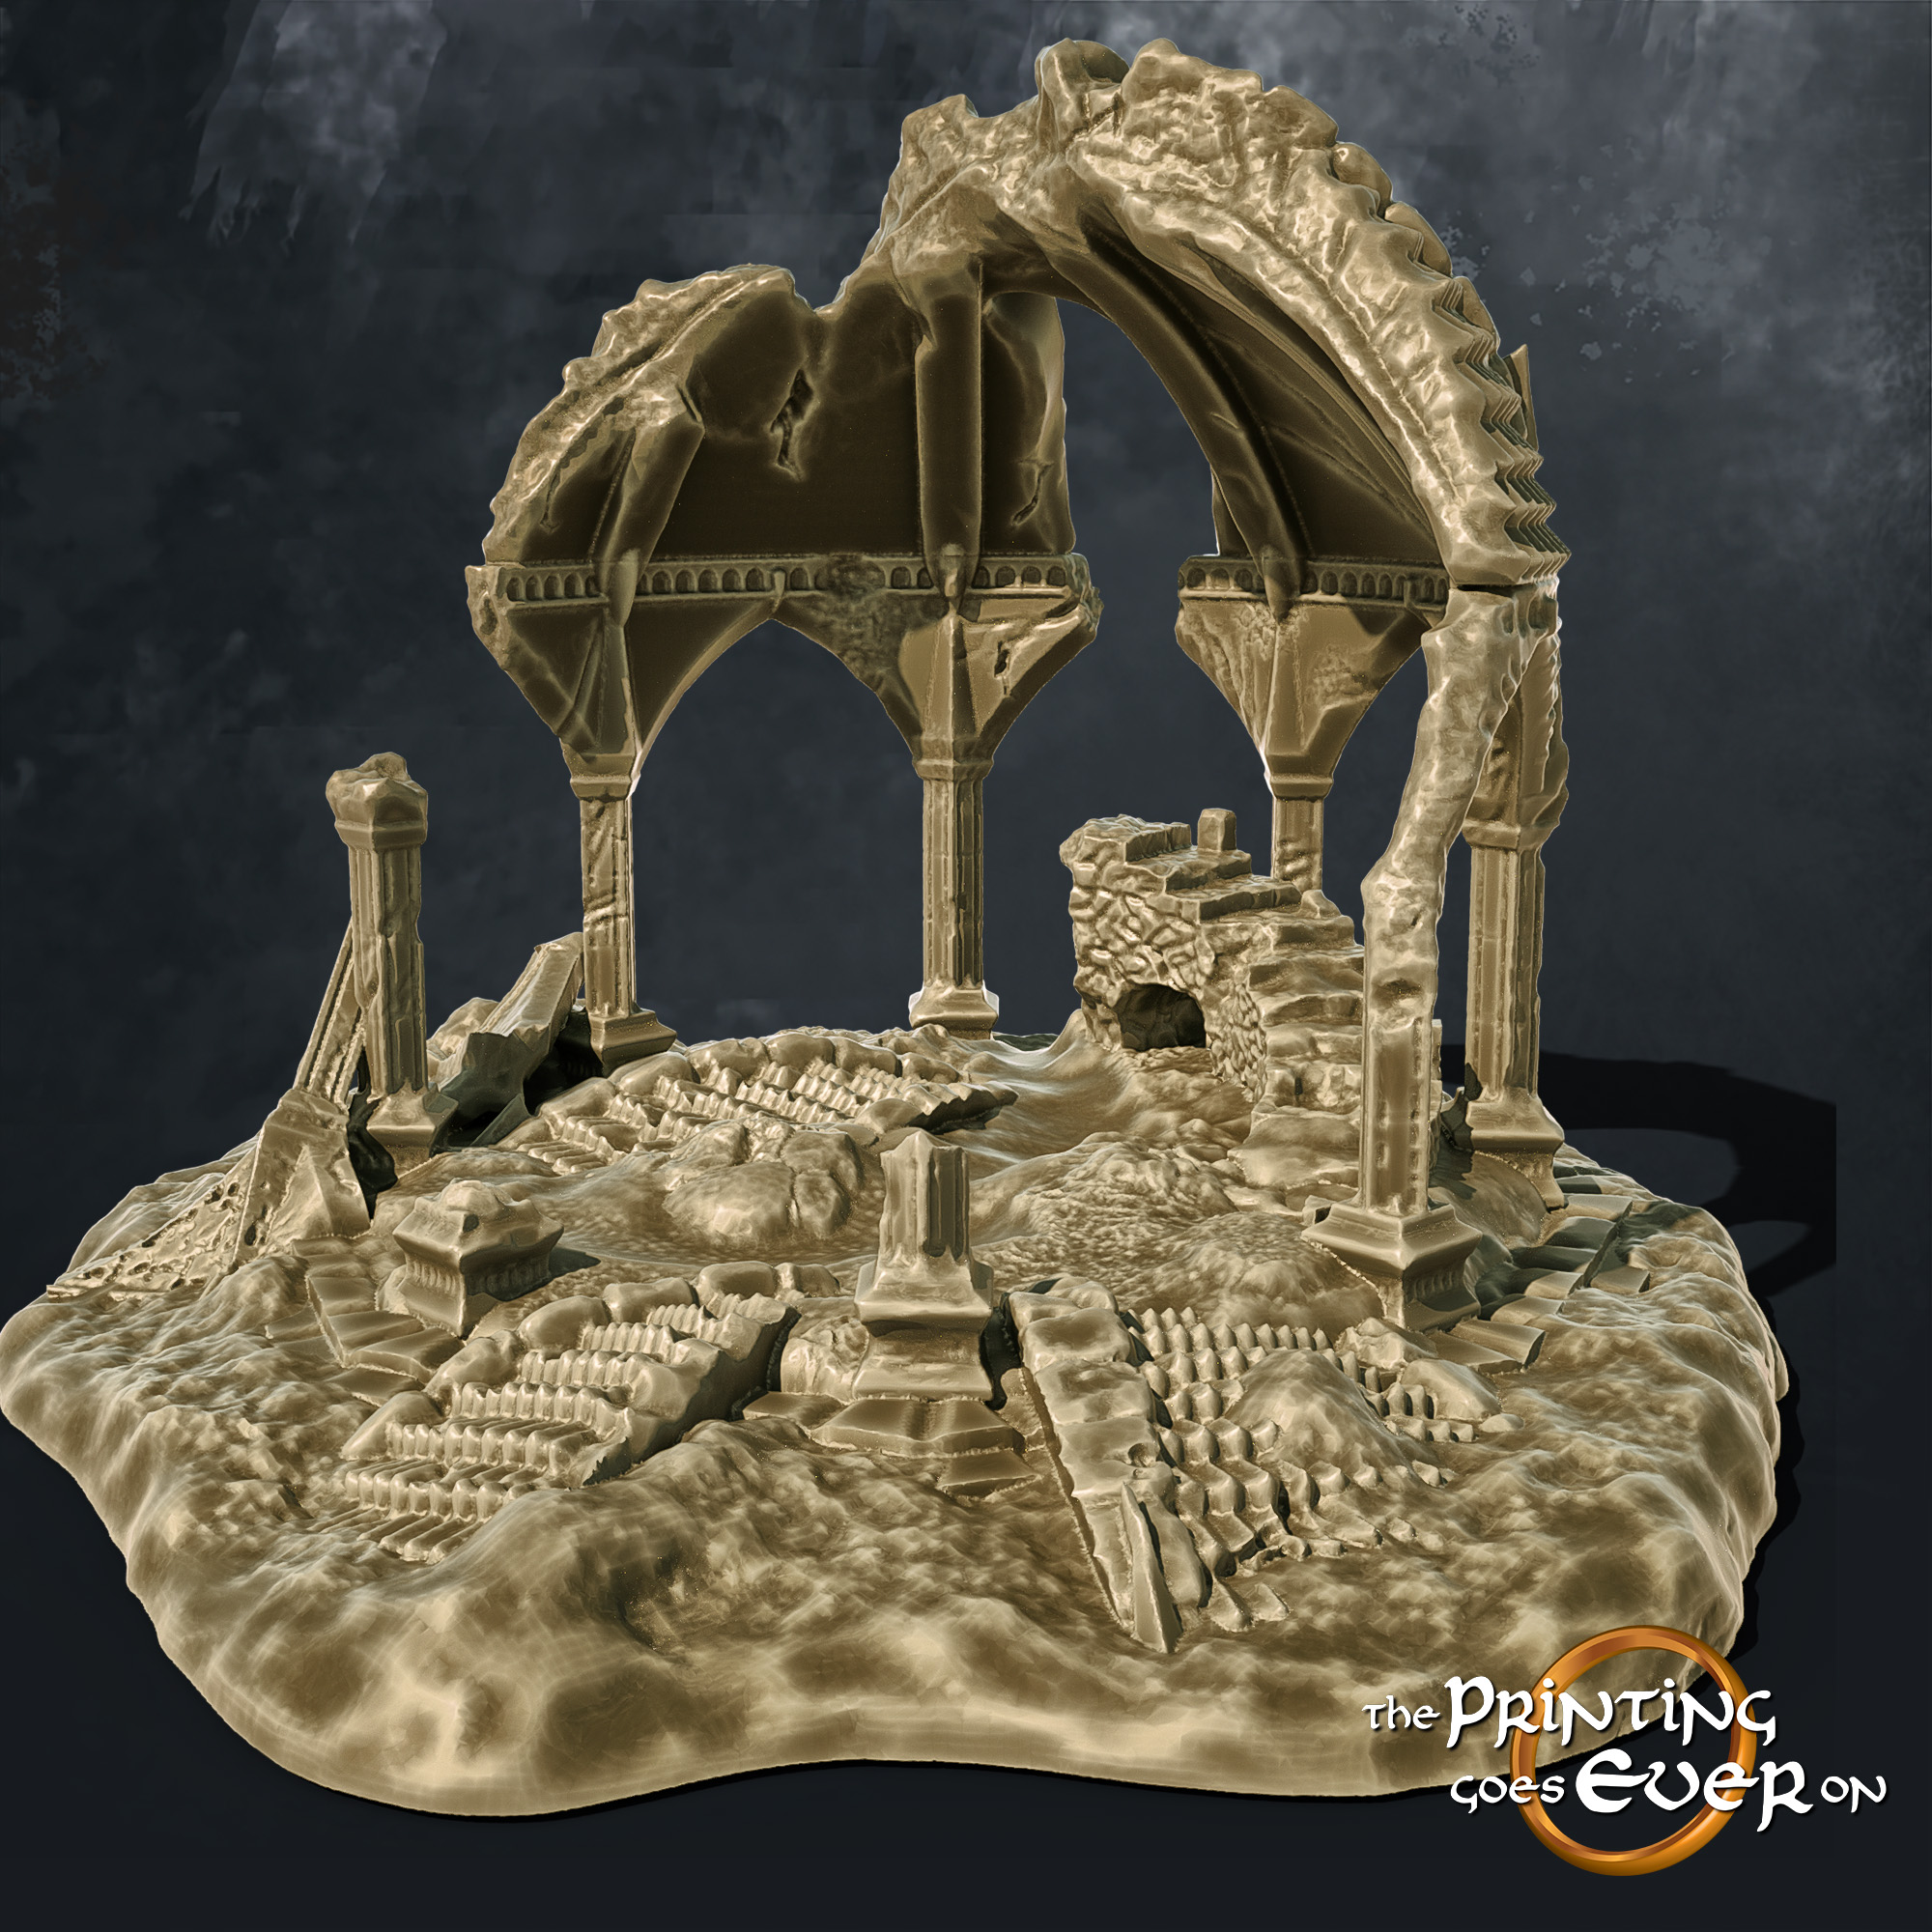 ruined tower temple columns stairs the printing goes ever on october 2020 patreon pack miniature terrain diorama